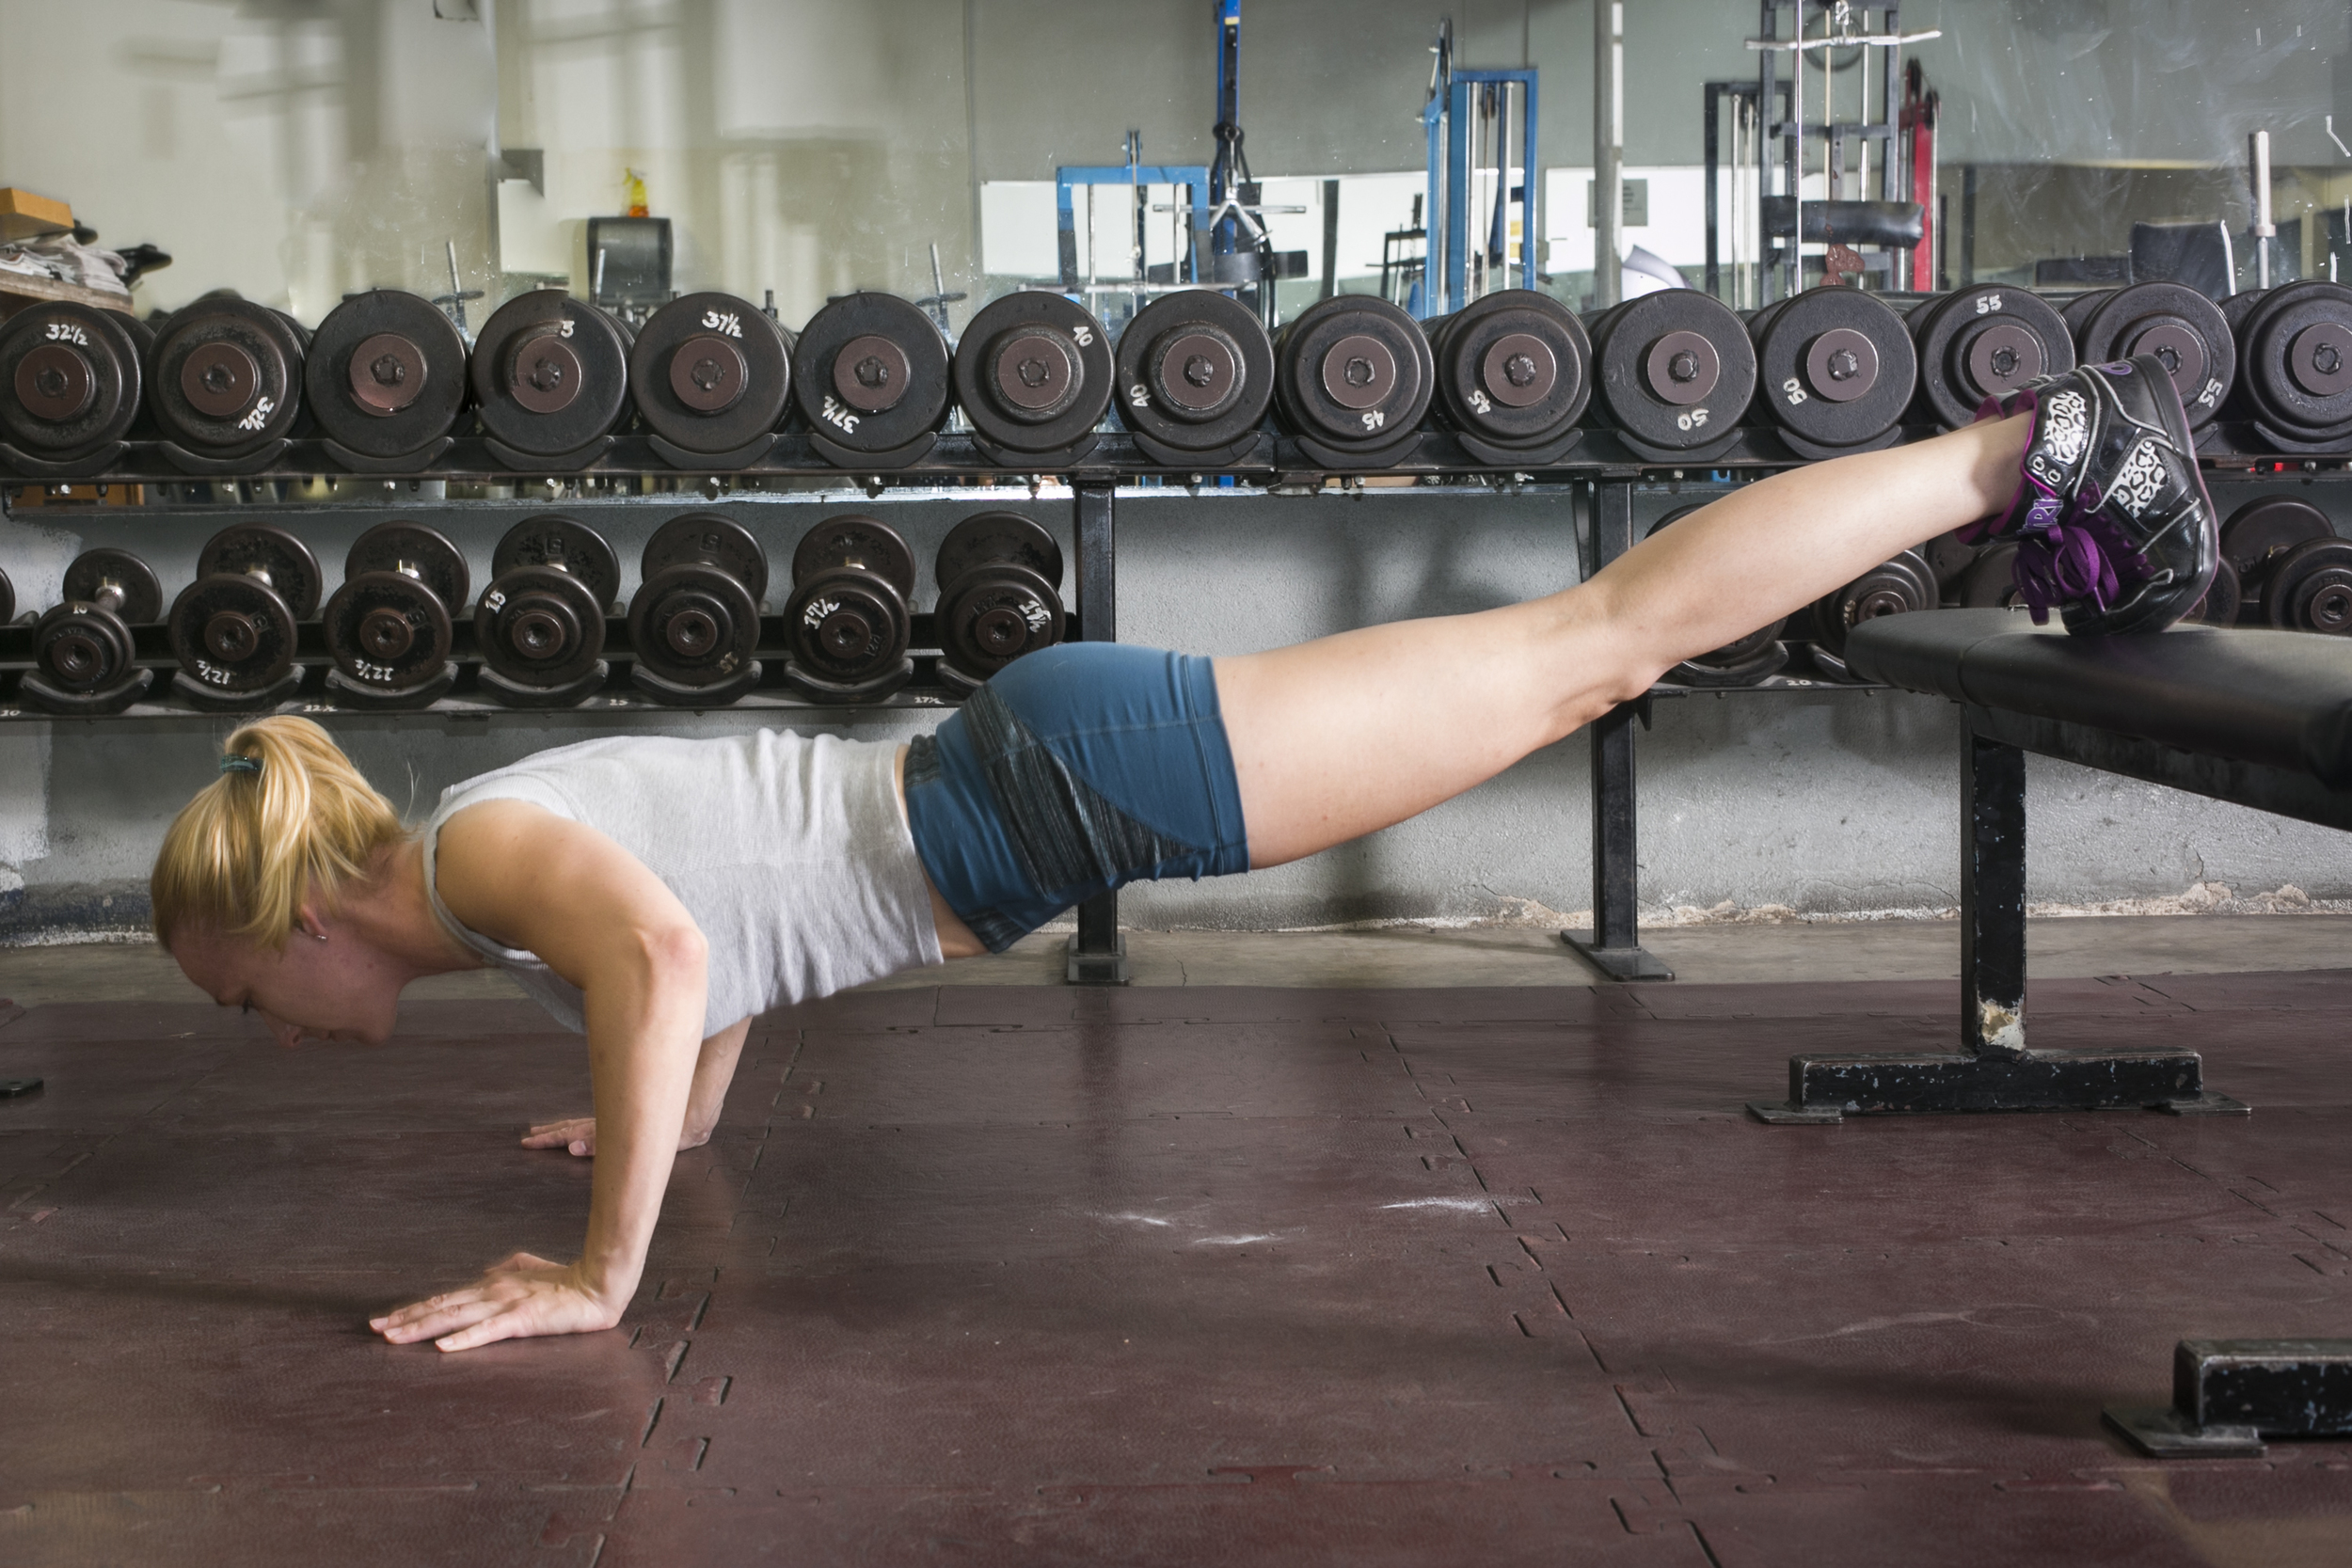 In some populations, pushups are a safer option than planks for core work.